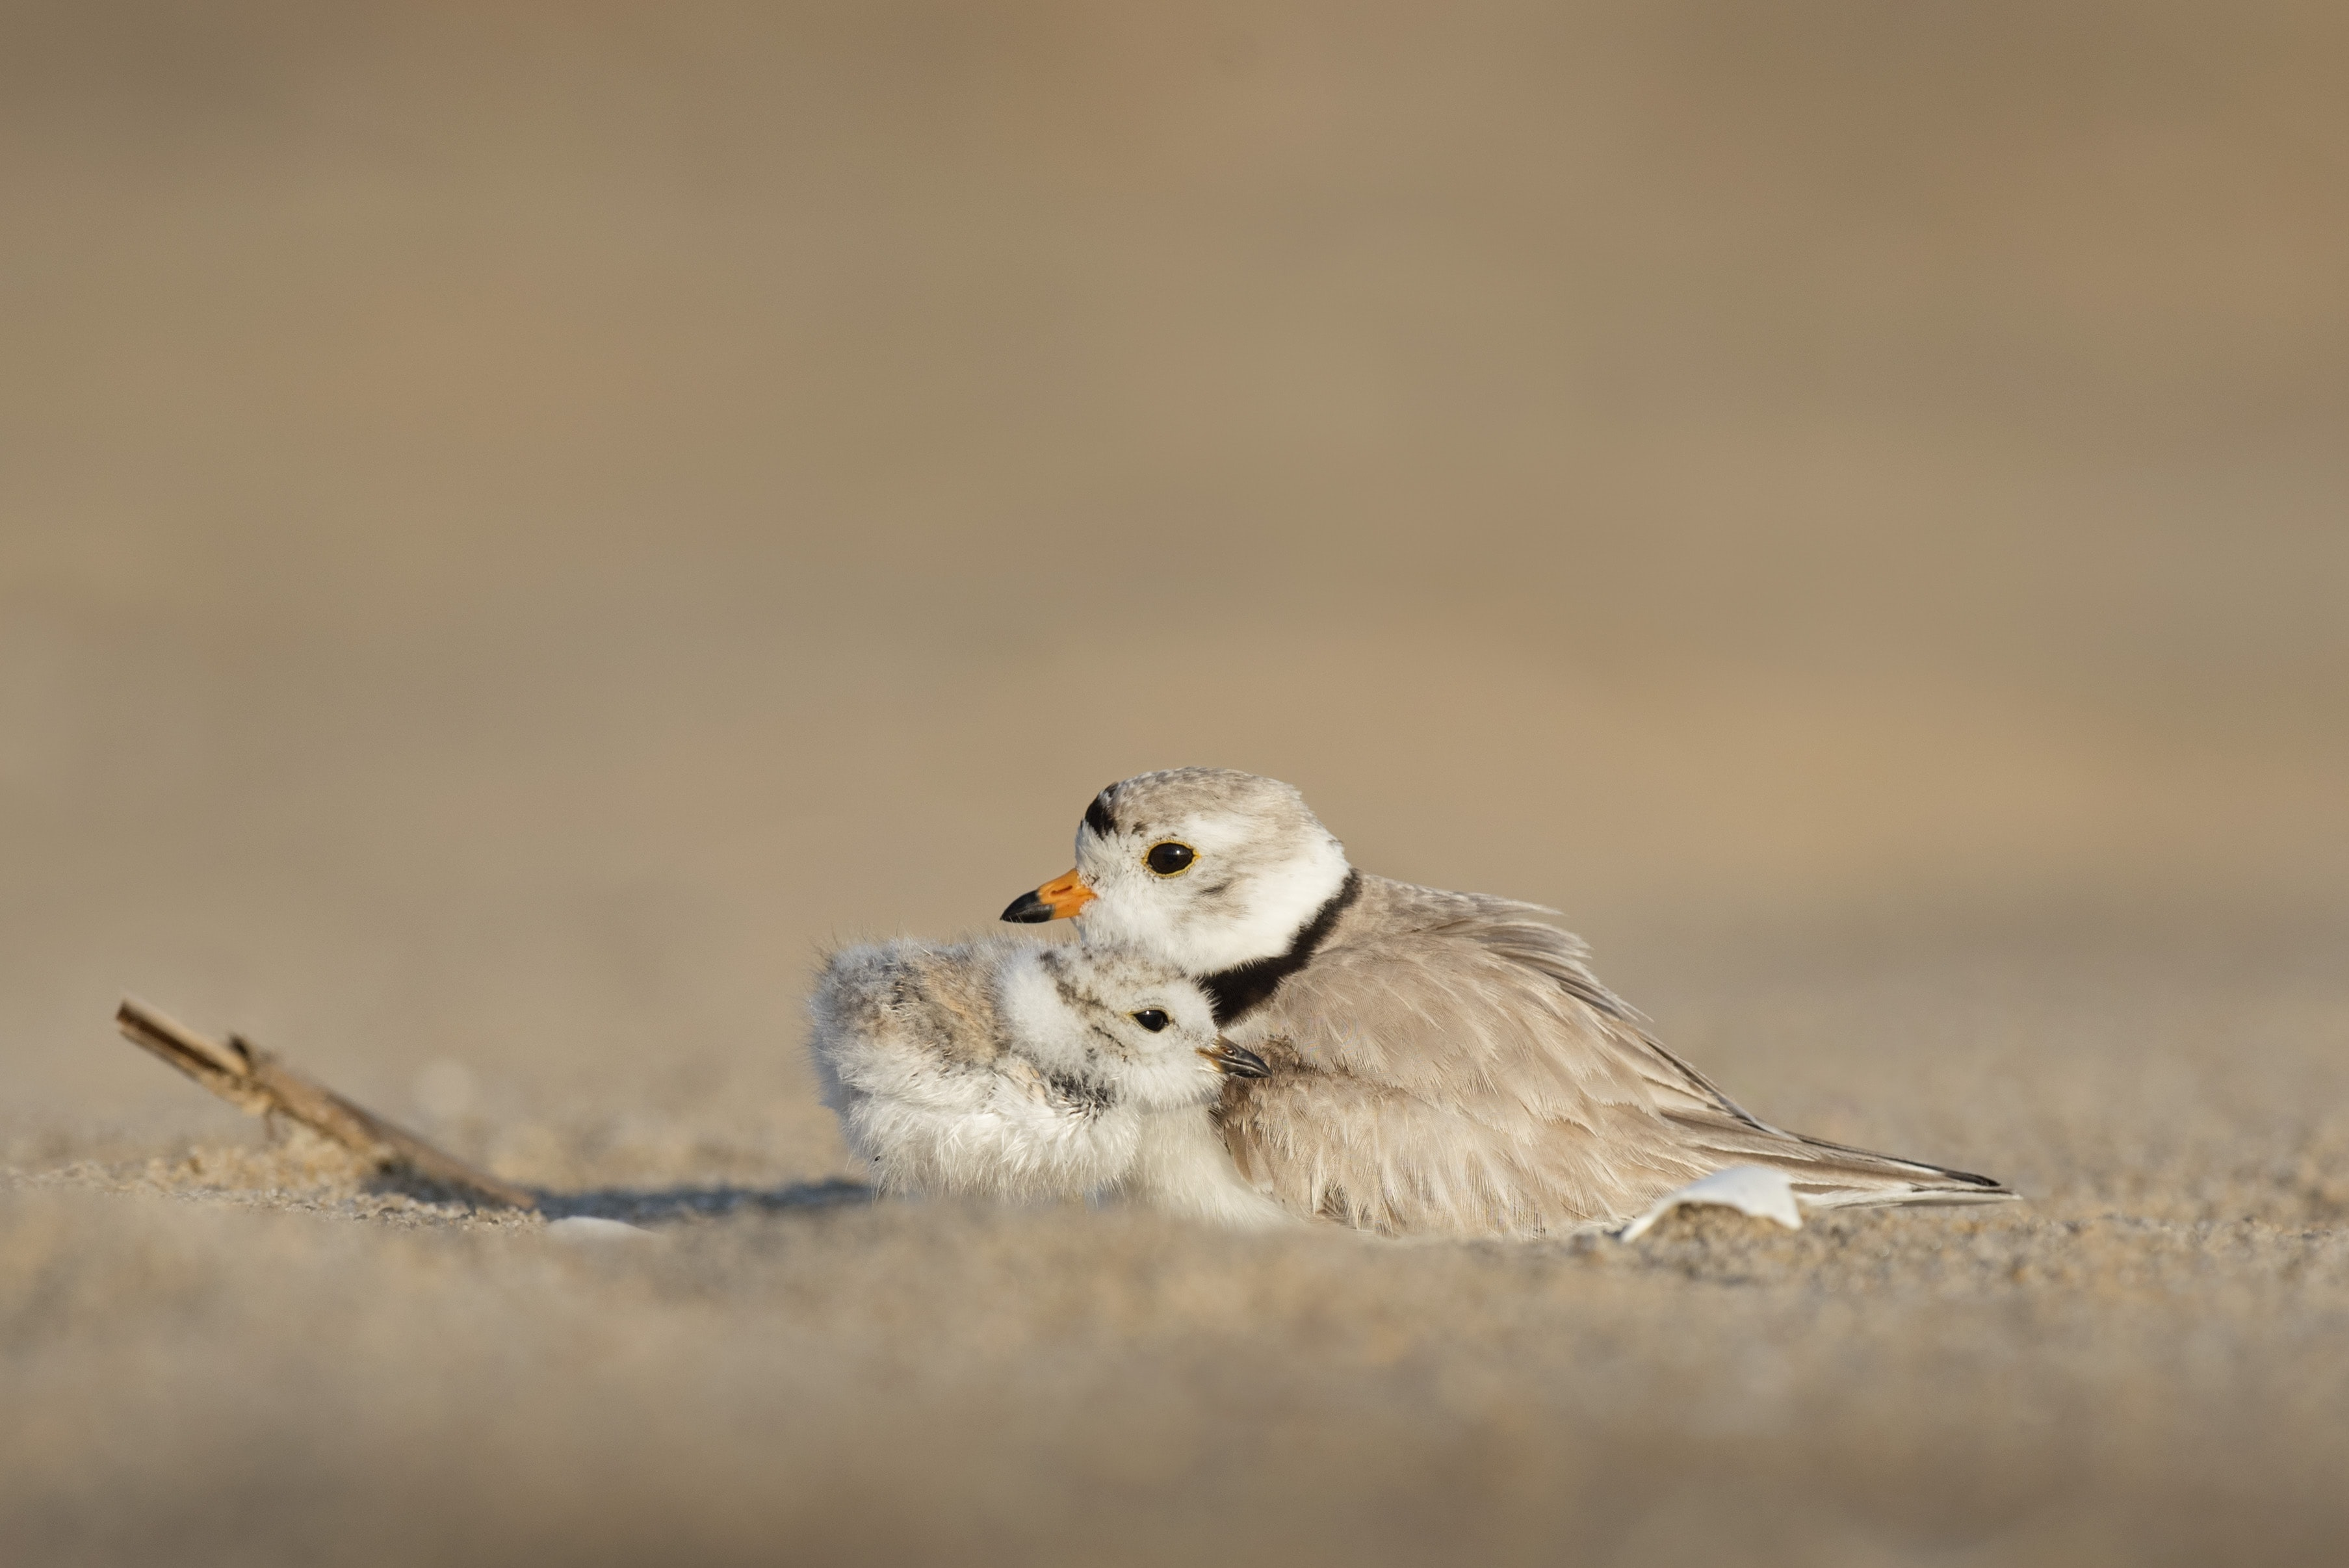 Mother bird cuddles baby bird protectively in the sand